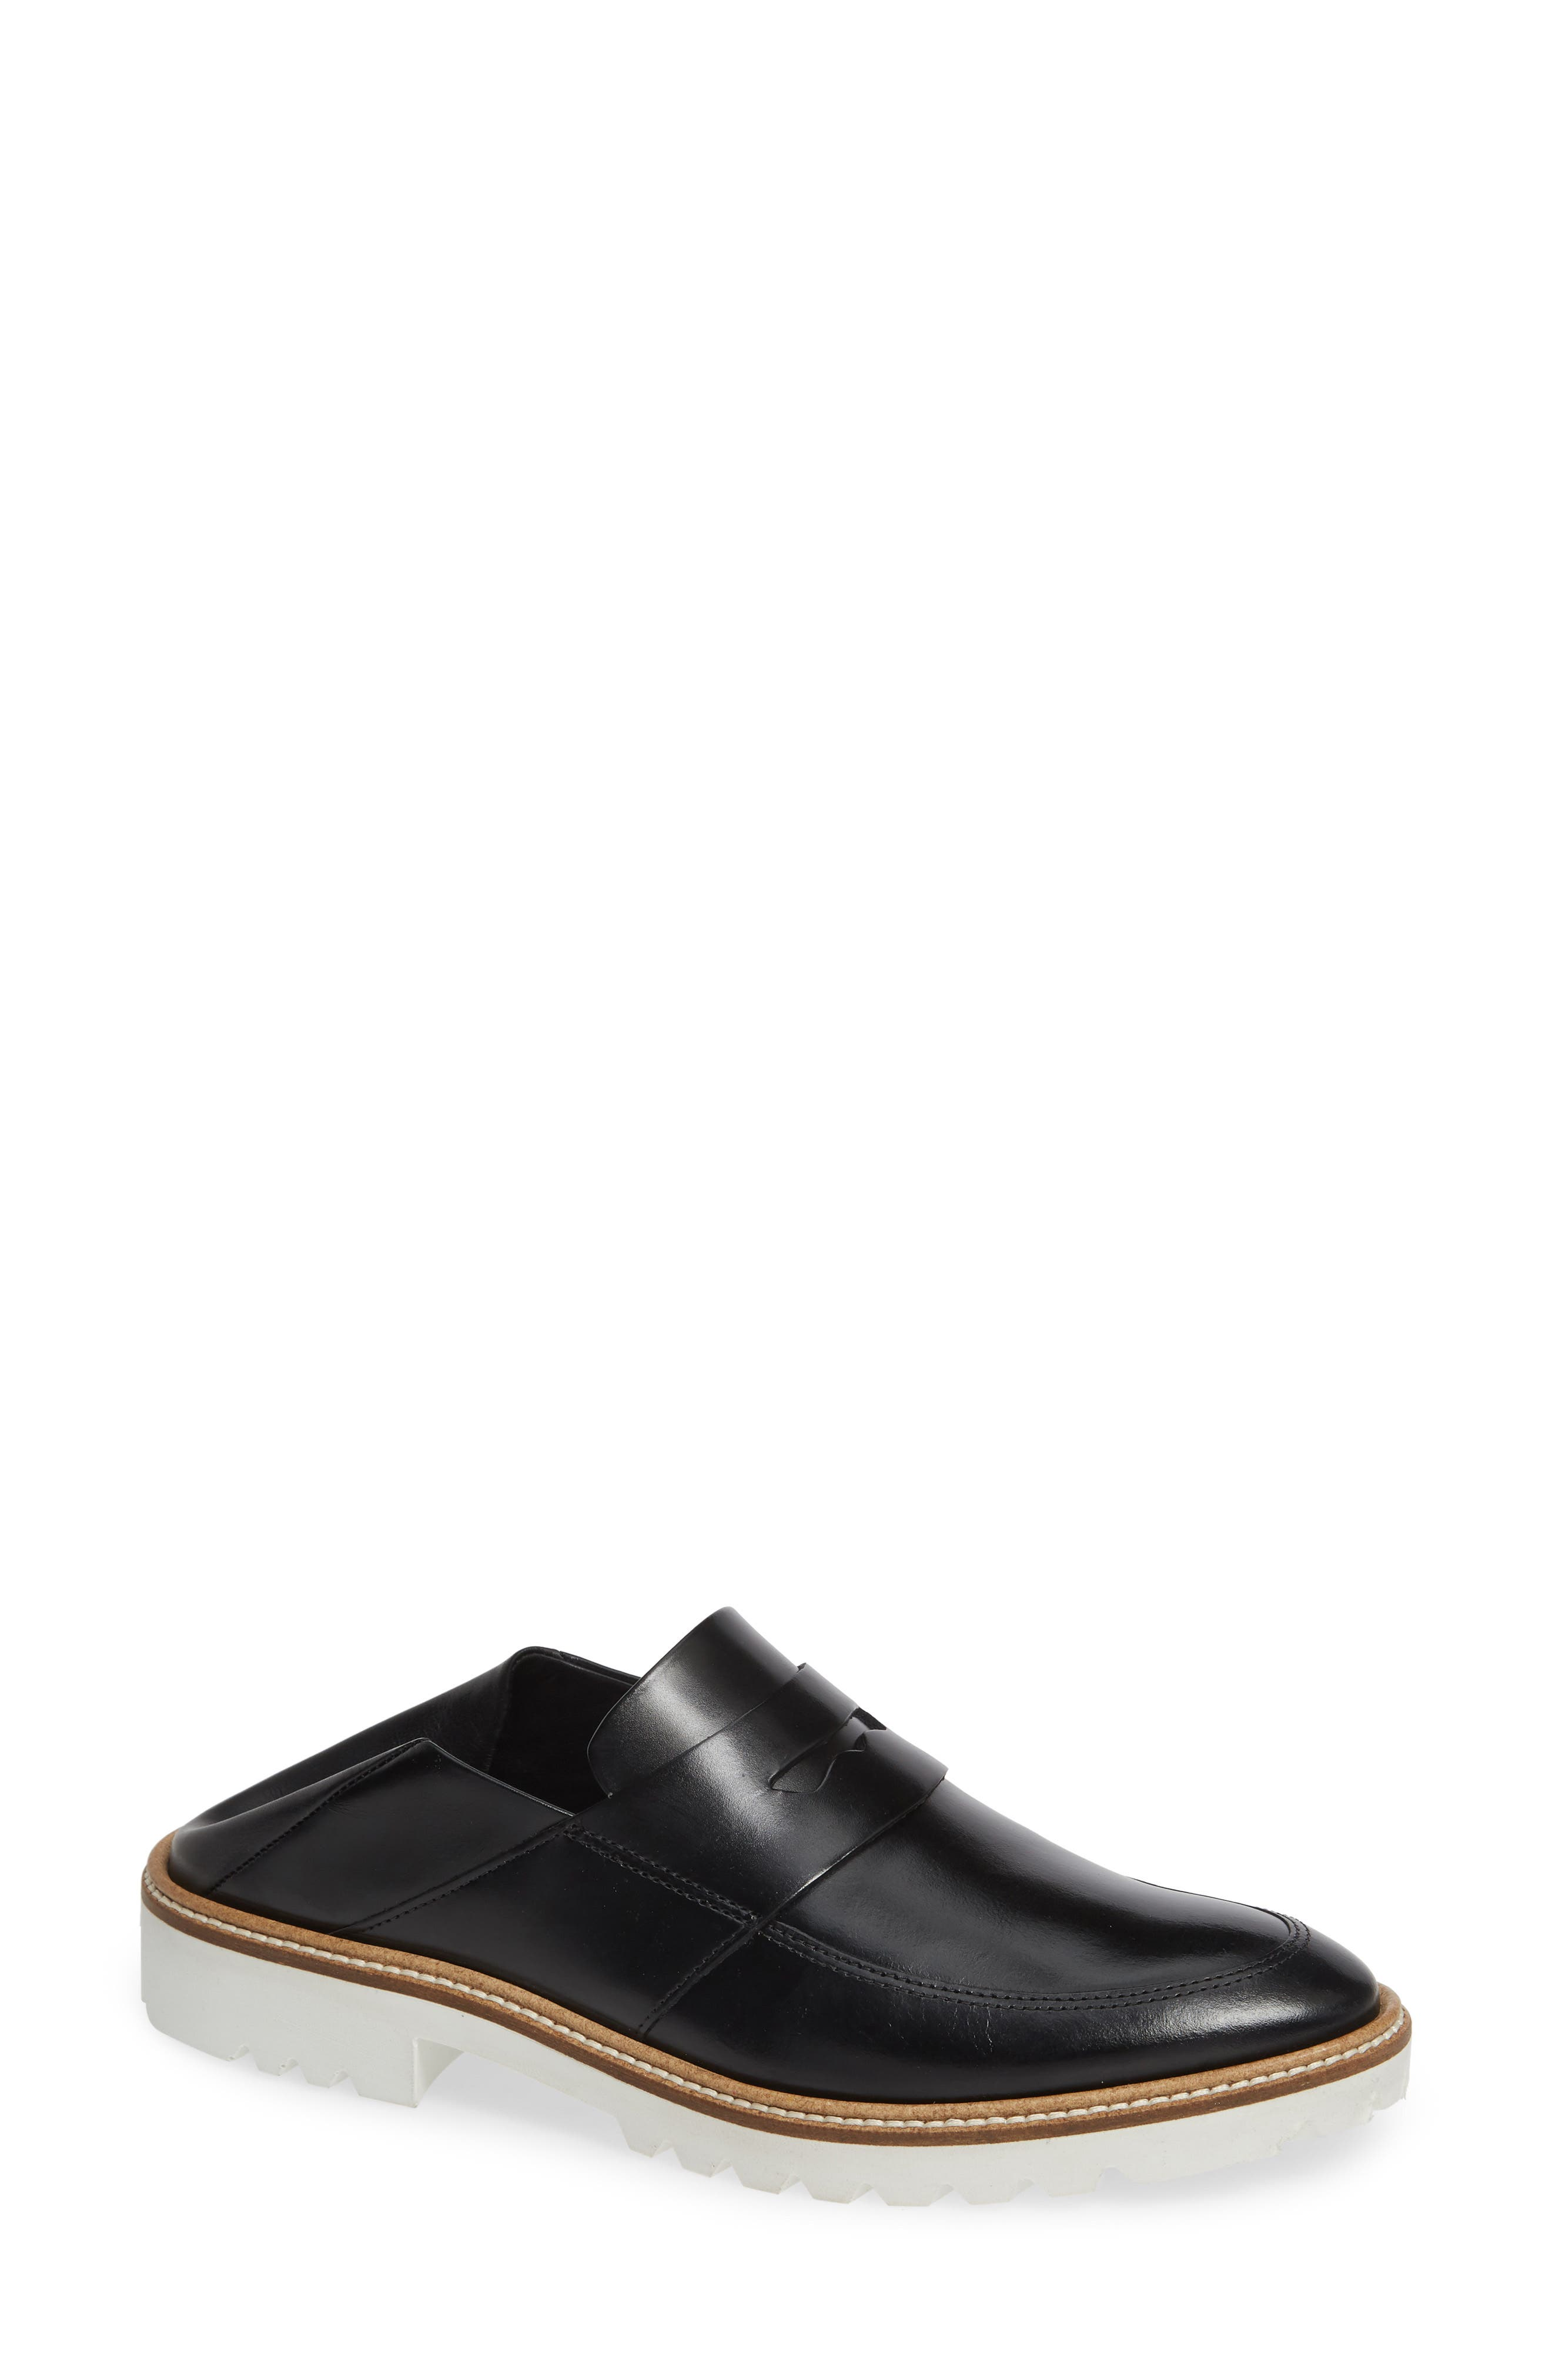 Incise Tailored Convertible Loafer,                             Main thumbnail 1, color,                             BLACK LEATHER